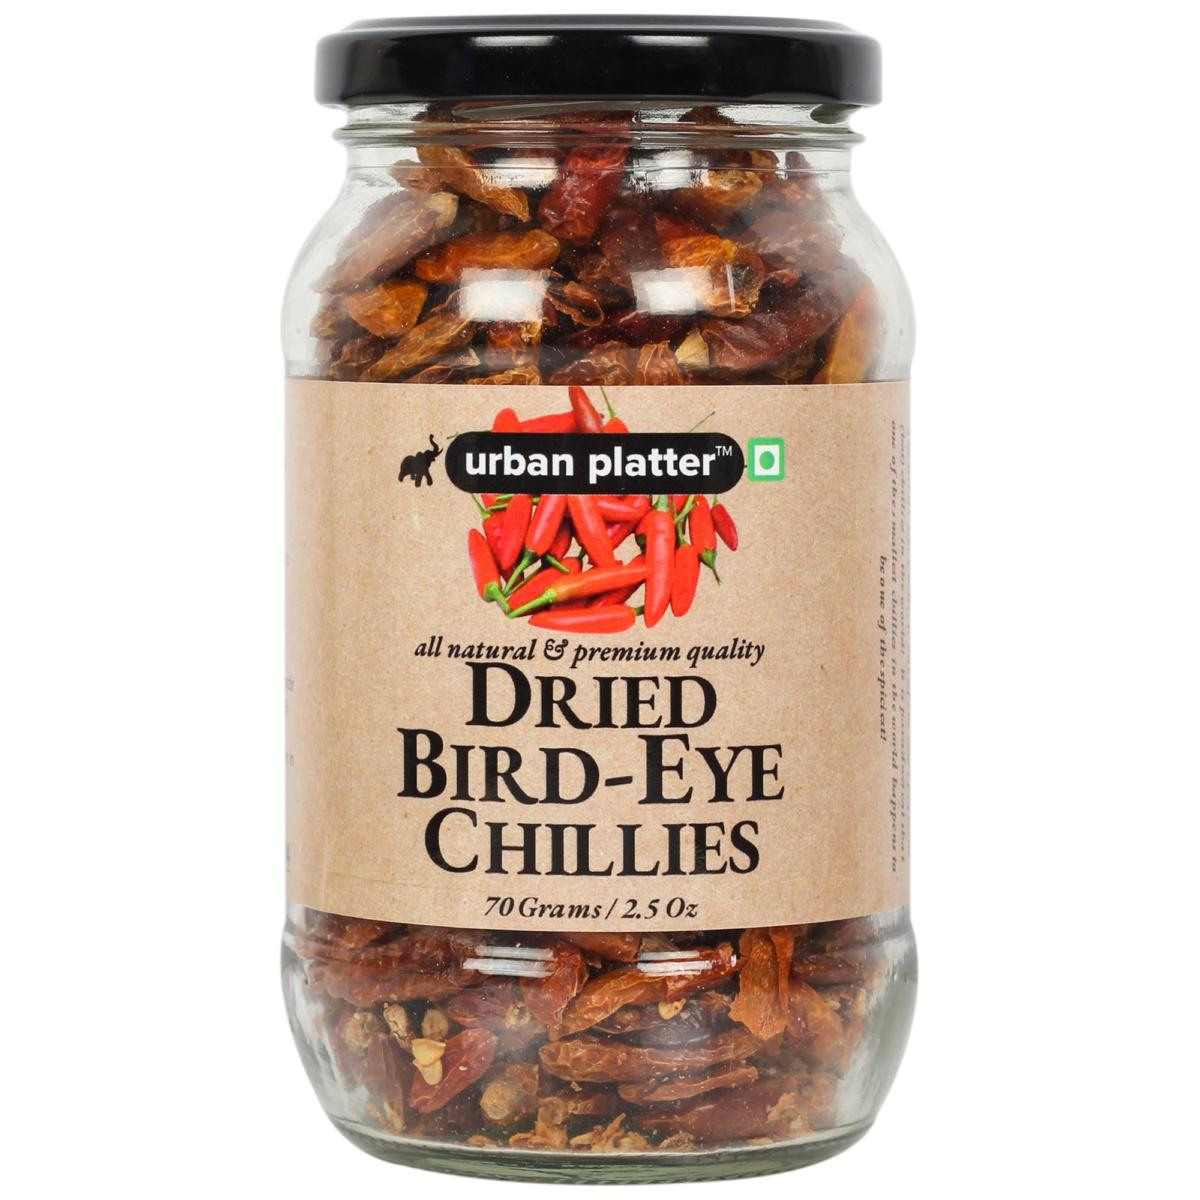 Urban Platter Dried Bird-Eye Chillies, 70g / 2.5oz [Tiny Chilly, Hot and Spicy]